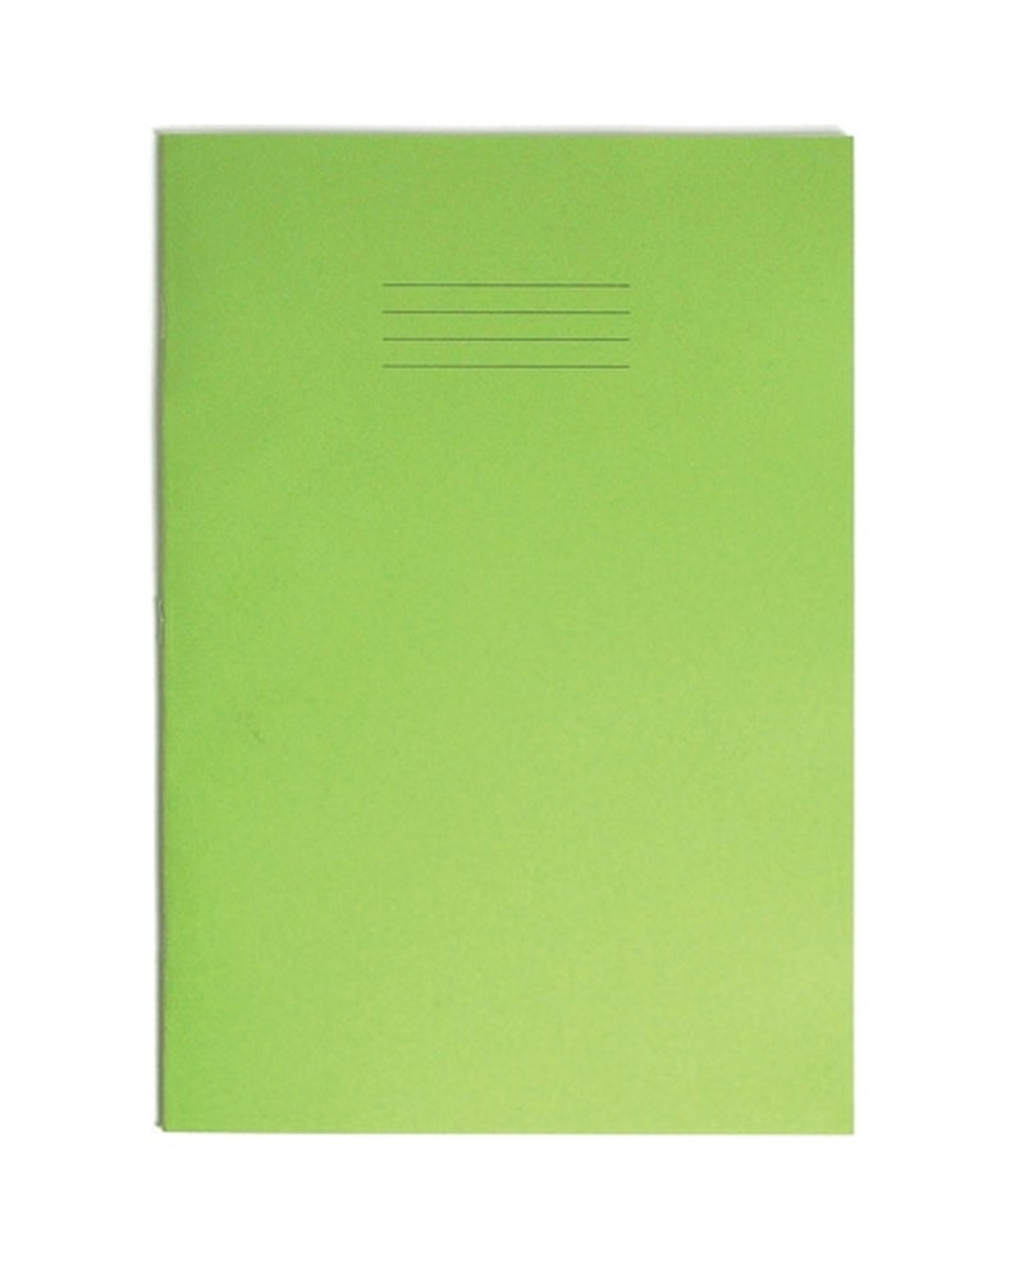 Exercise Book A4+ size (330 x 250mm) Light Green Cover Plain - No Ruling 40 Pages